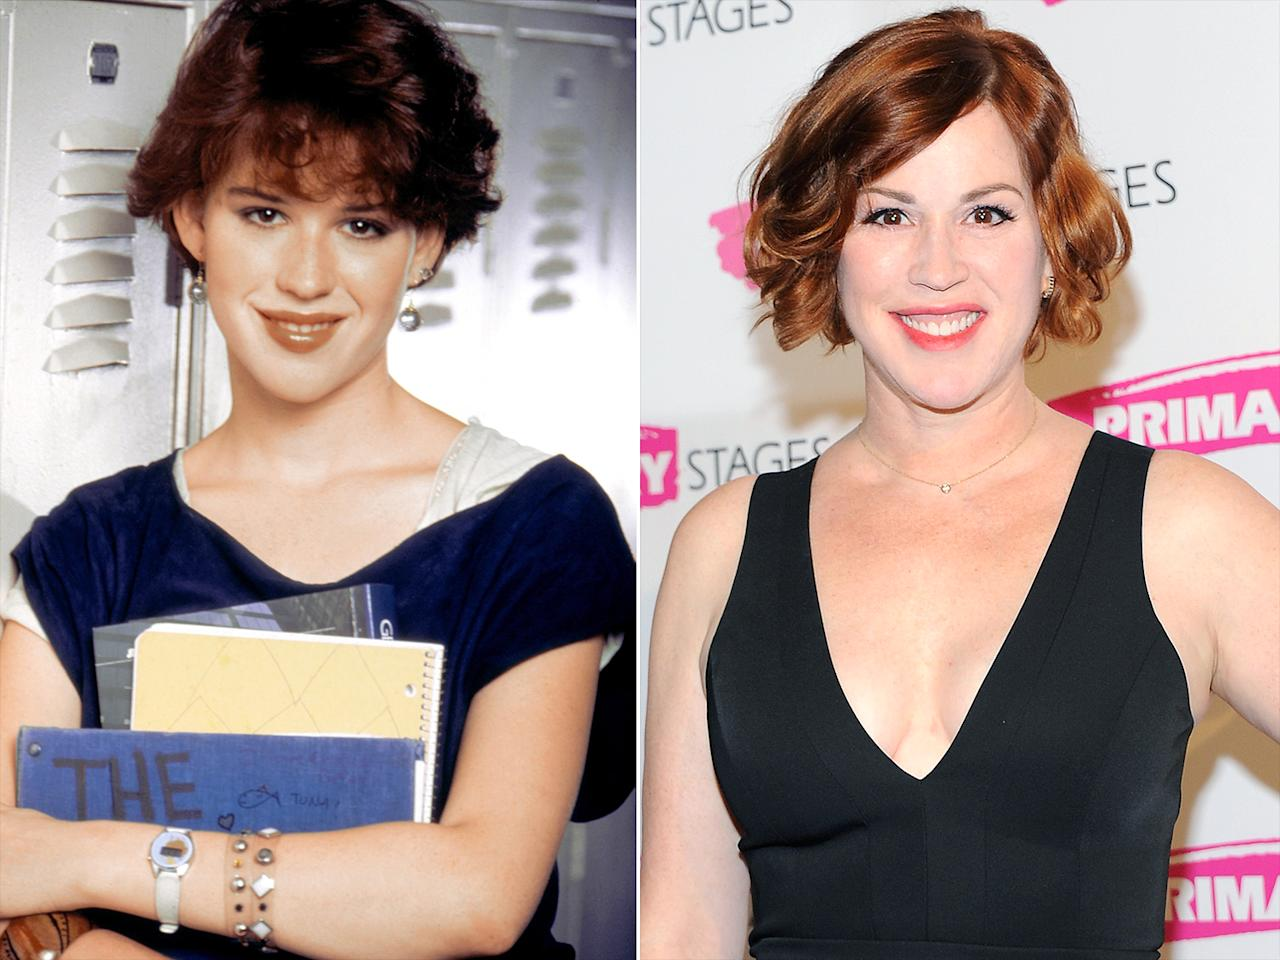 "<p>Ringwald, 49, has been one of the best at keeping her name in the news since her slew of '80s hits, earning a steady stream of credits before making a splash on ABC Family's <em>The Secret Life of the American Teenager </em>and <em>Raising Expectations</em> in recent years. In late March, her former costar Andrew McCarthy <a rel=""nofollow"" href=""http://people.com/movies/molly-ringwald-to-play-mom-of-andrew-mccarthy-son-new-movie/"">revealed that Ringwald would be playing his 15-year-old son Sam's mother</a> in the upcoming movie <em>All These Small Moments. </em>""She emailed me on the first day and she said, 'Your son just did a scene and when he walked away, it was just like watching you walk away from me 30 years ago,' "" McCarthy recalled on <em>The MOMS</em>. Ringwald has three children with husband Panio Gianopoulos, whom she married in 2007.</p>"